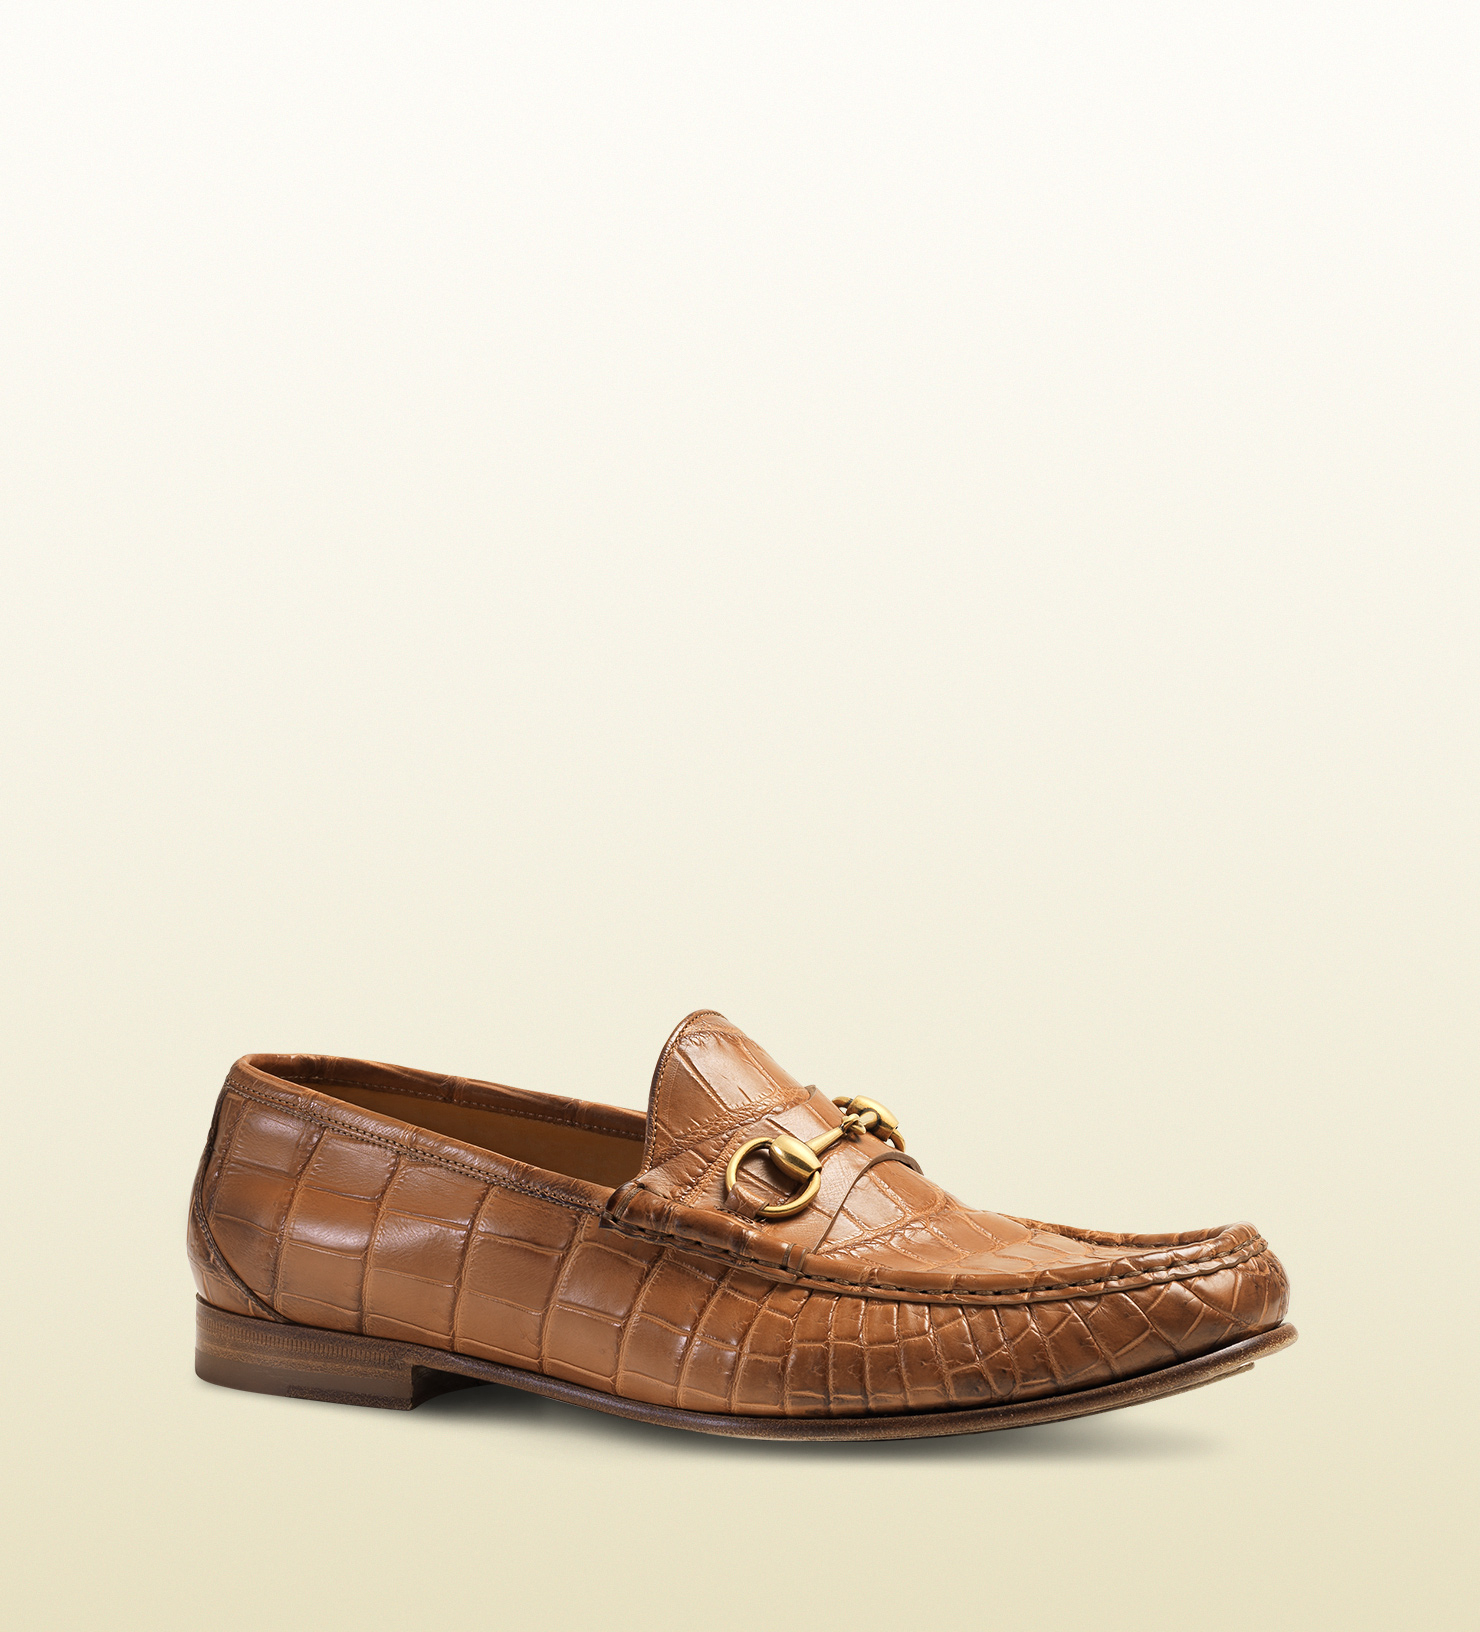 Nordstrom Mens Shoes Gucci